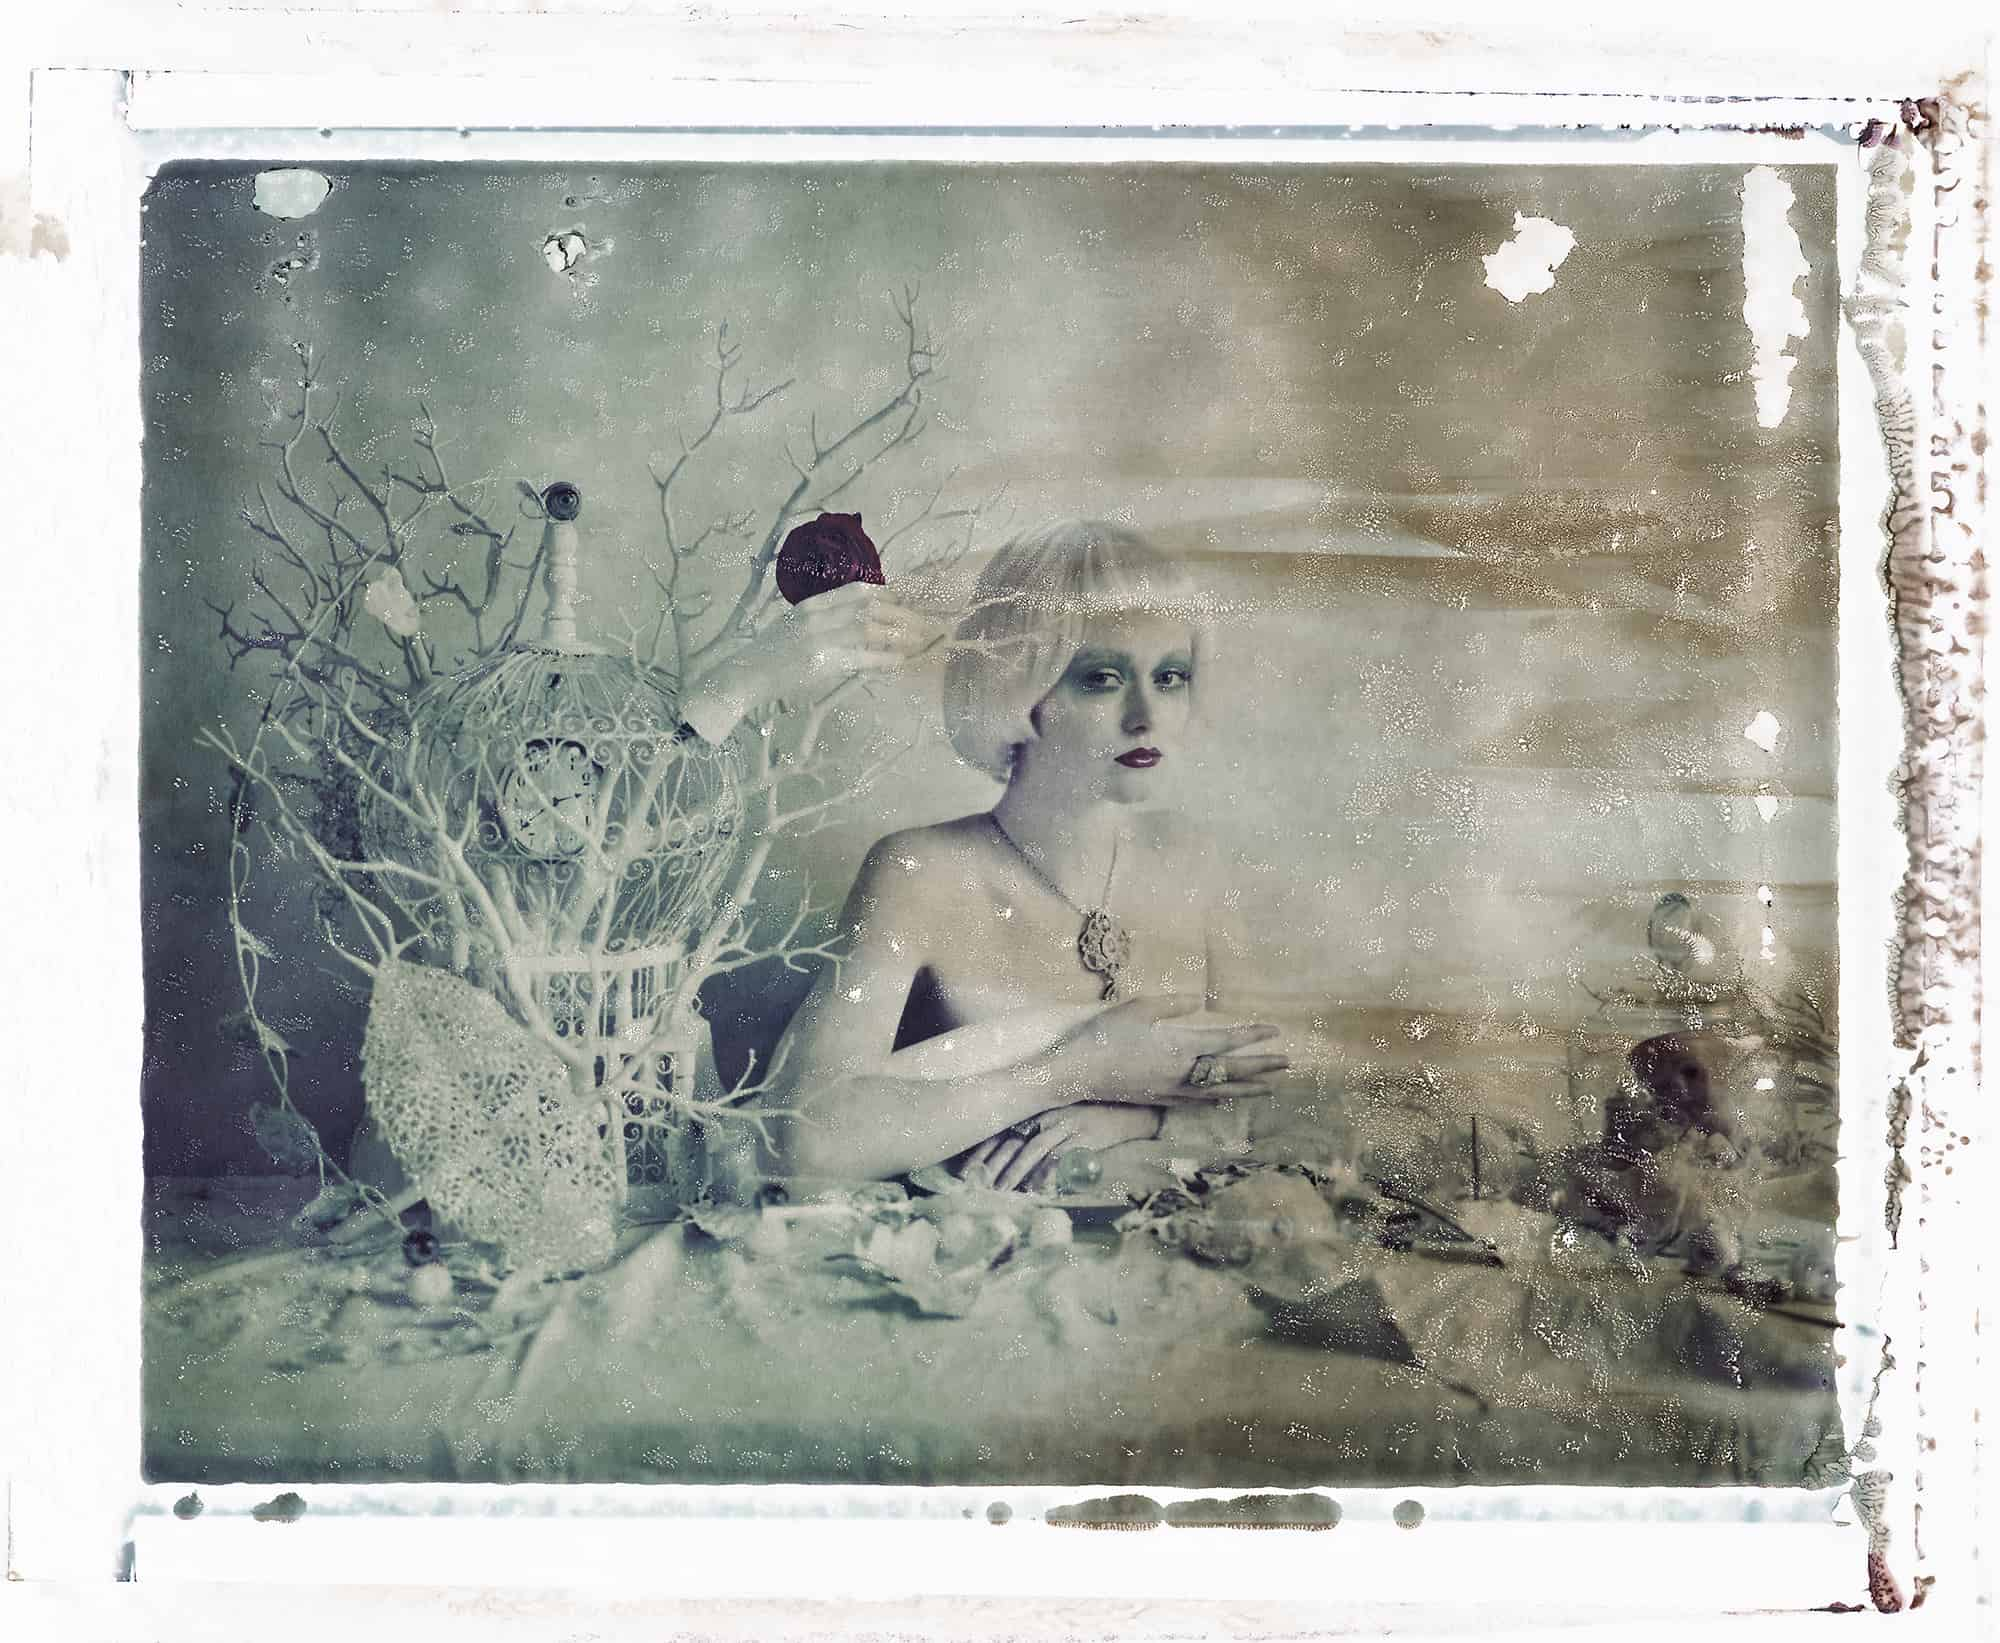 Fine art b/w photography of semi-nude fashion model wearing Reposi jewellery, necklace, rings, sitting on a table with bird cage, snow balls, glass eyes e.g.,. Inspired by Surrealist paintings.